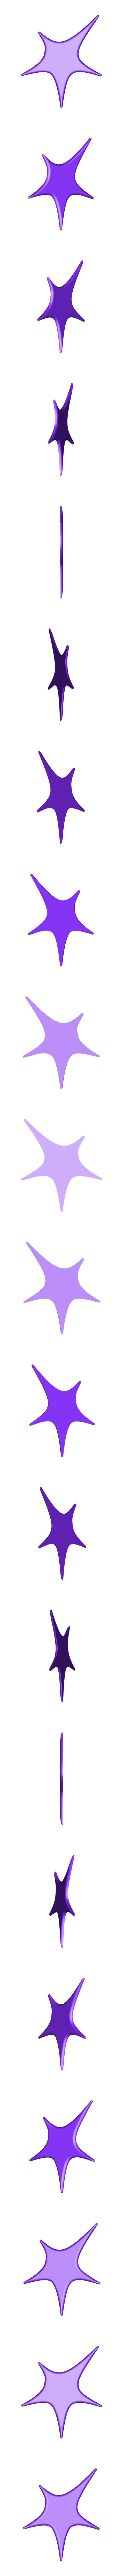 Space Decals_ Star F.stl Download free STL file Space Decals • 3D printing template, Hom3d